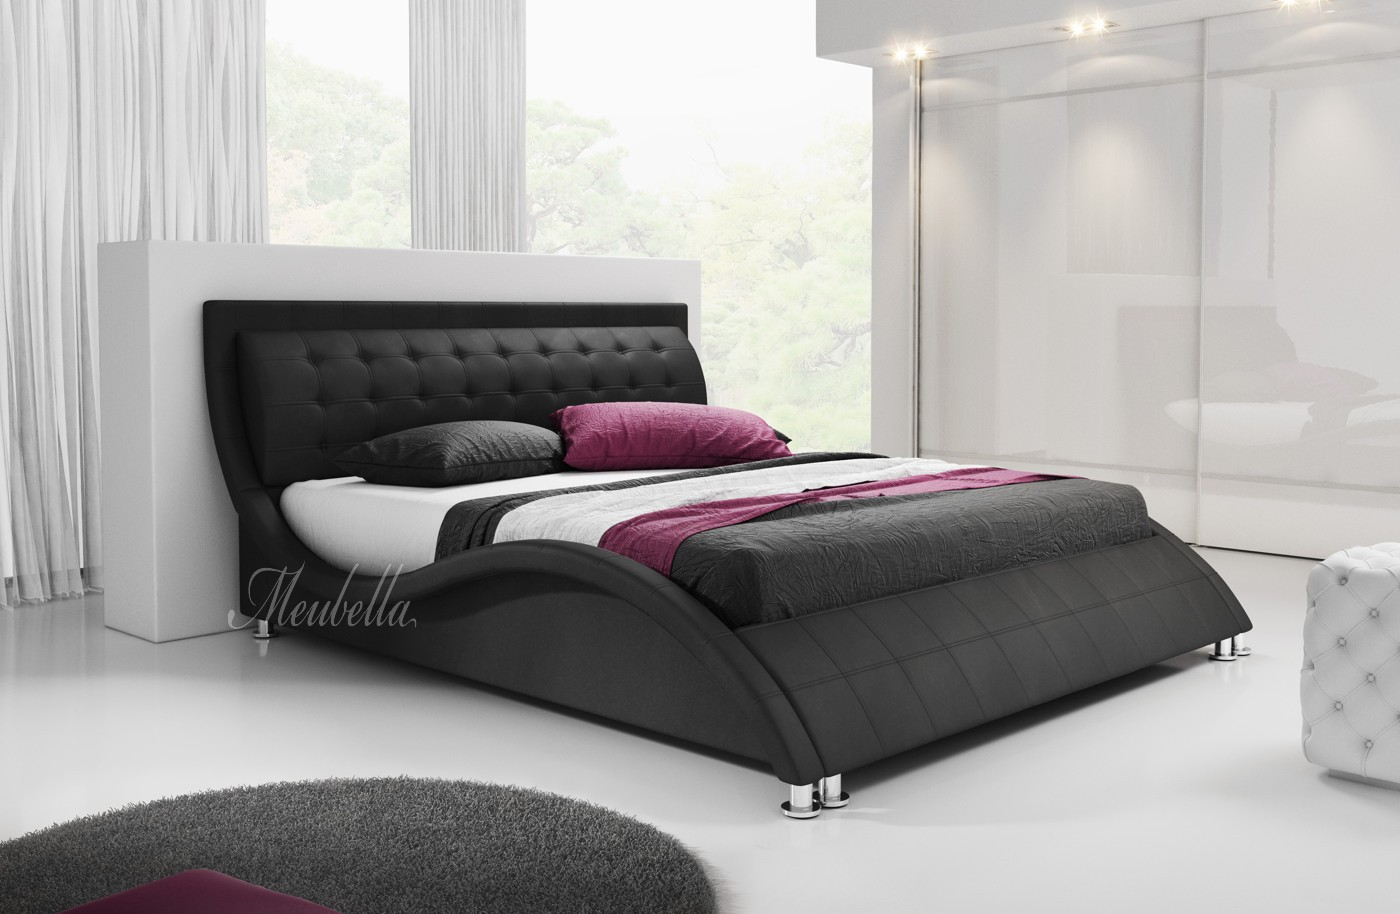 tweepersoonsbed sumoya zwart 180x200 cm meubella. Black Bedroom Furniture Sets. Home Design Ideas